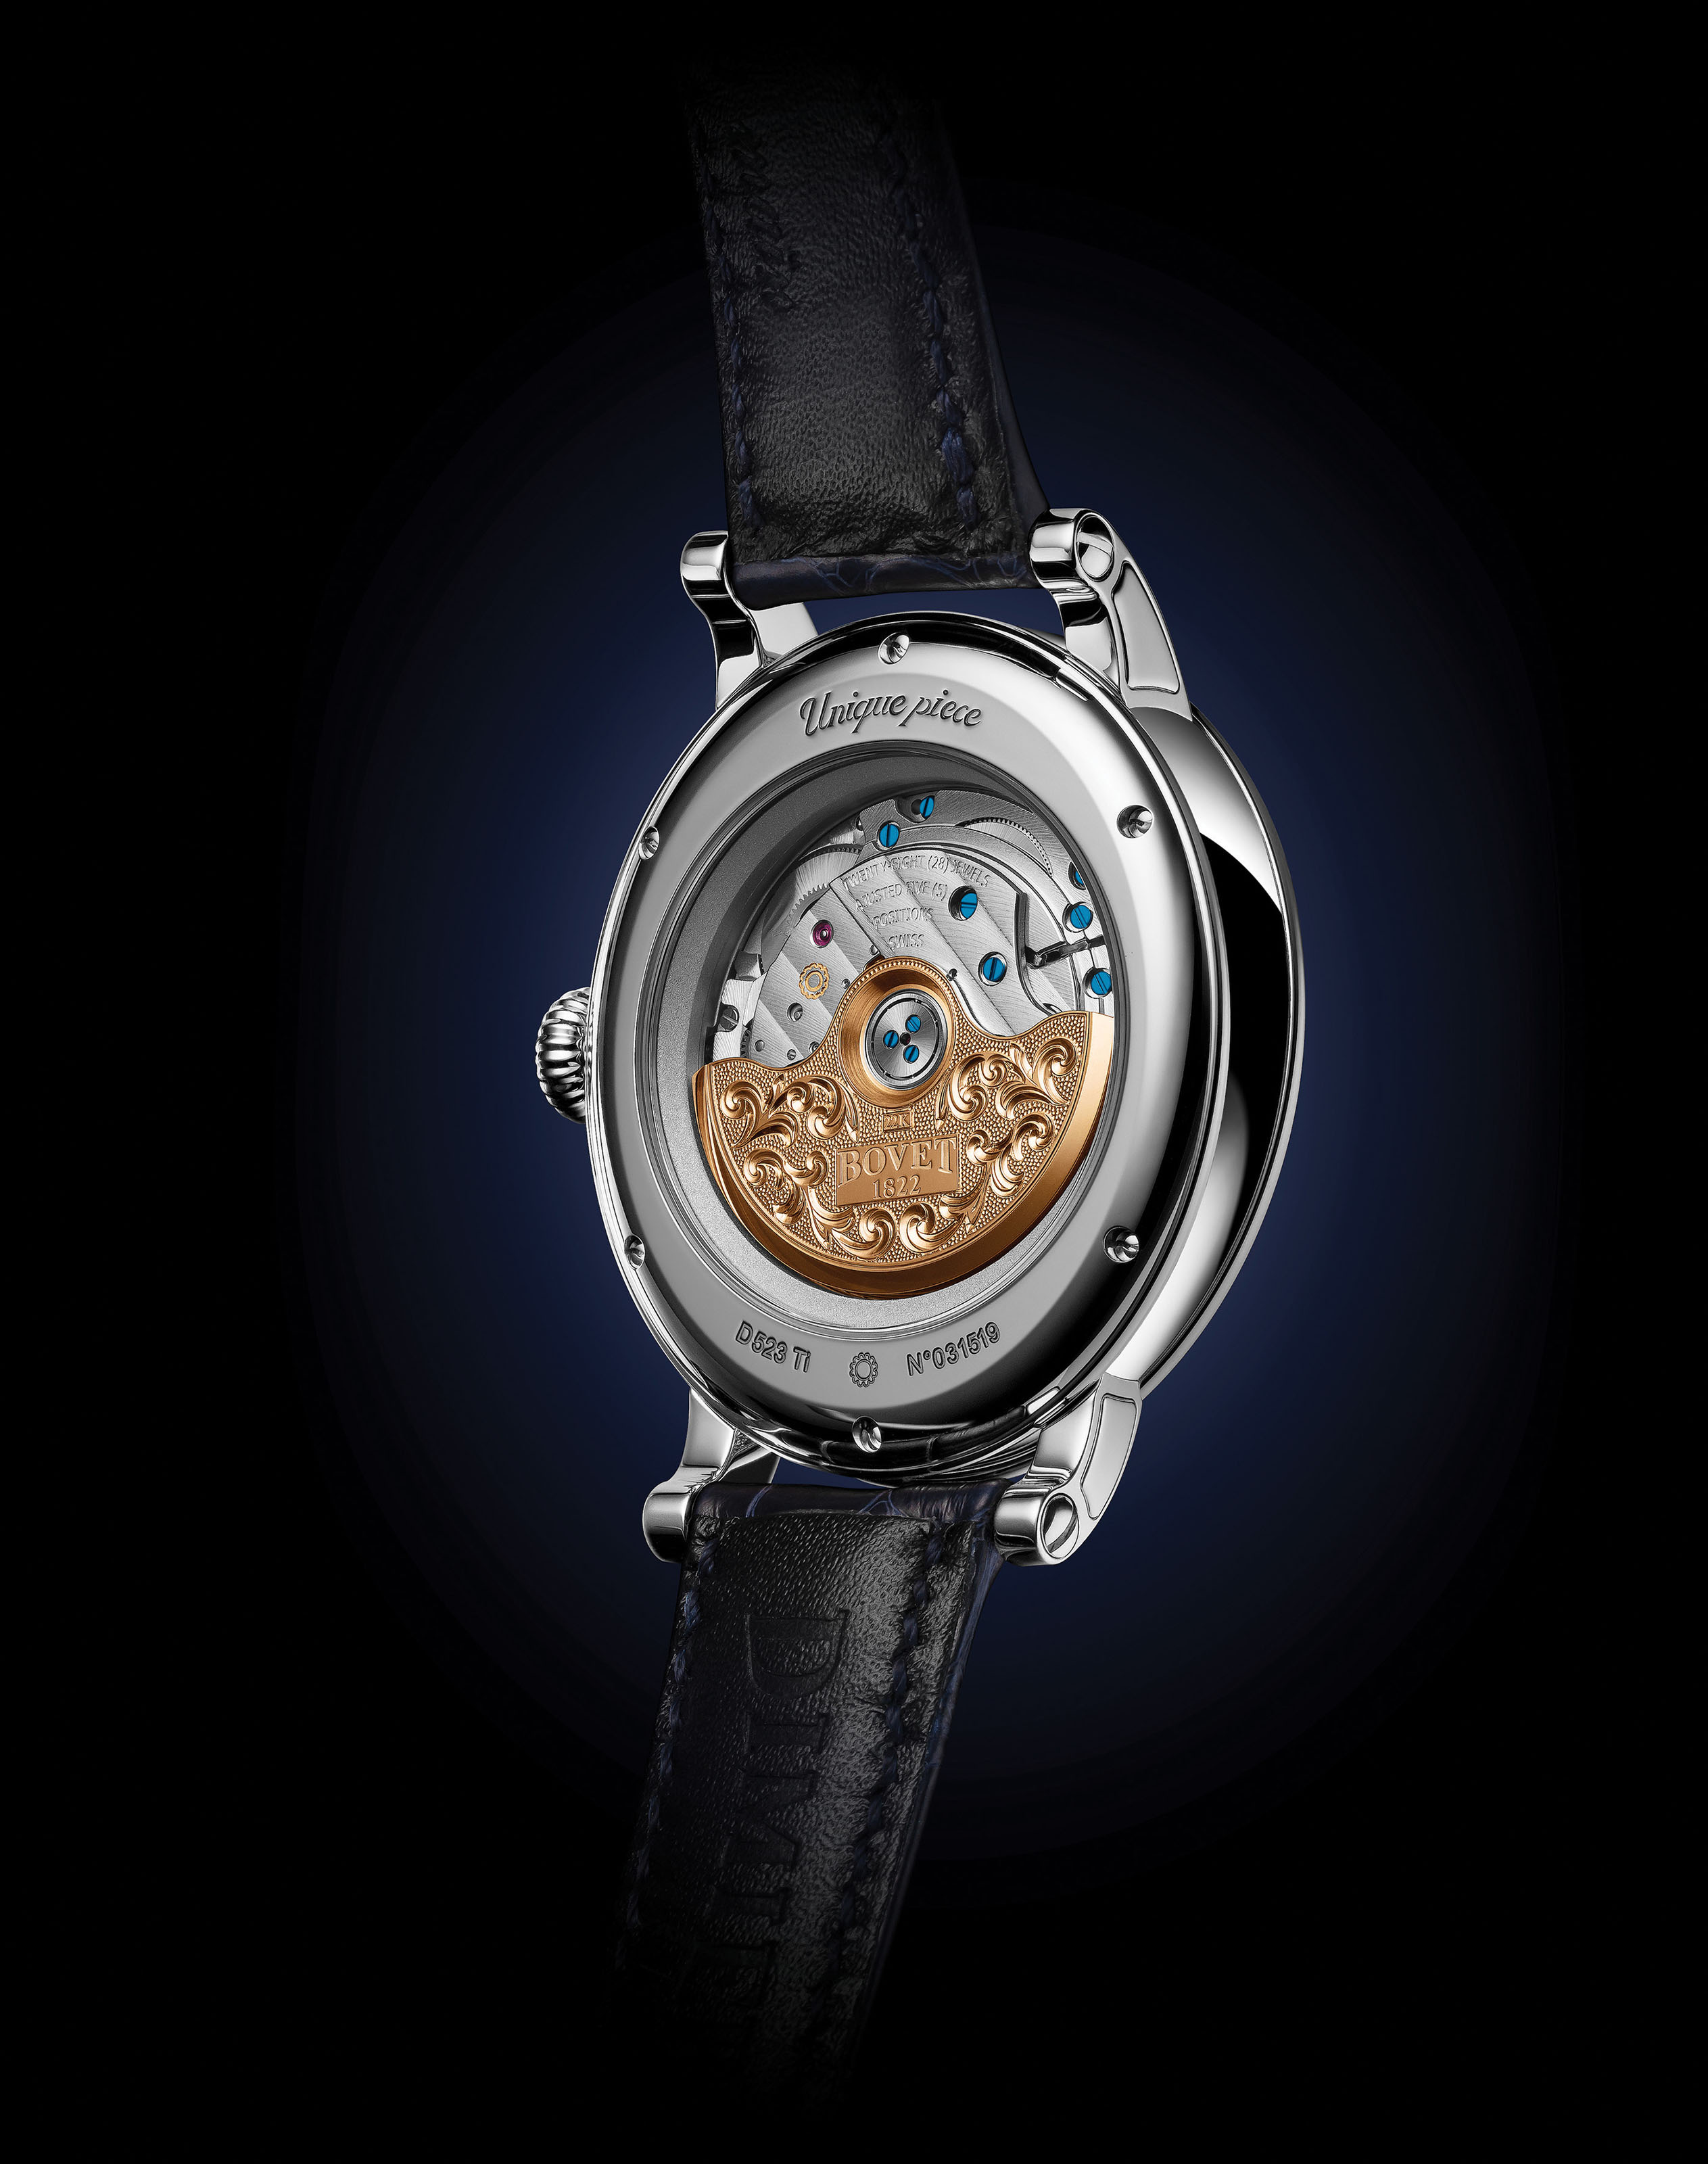 """BOVET 1822 RÉCITAL 23 """"HOPE""""  With Récital 23 """"Hope"""" timepiece, BOVET watchmakers create an enchanting universe, to which engravers and miniaturist painters of the House then add their poetic touch, by sending a sincere message of hope."""